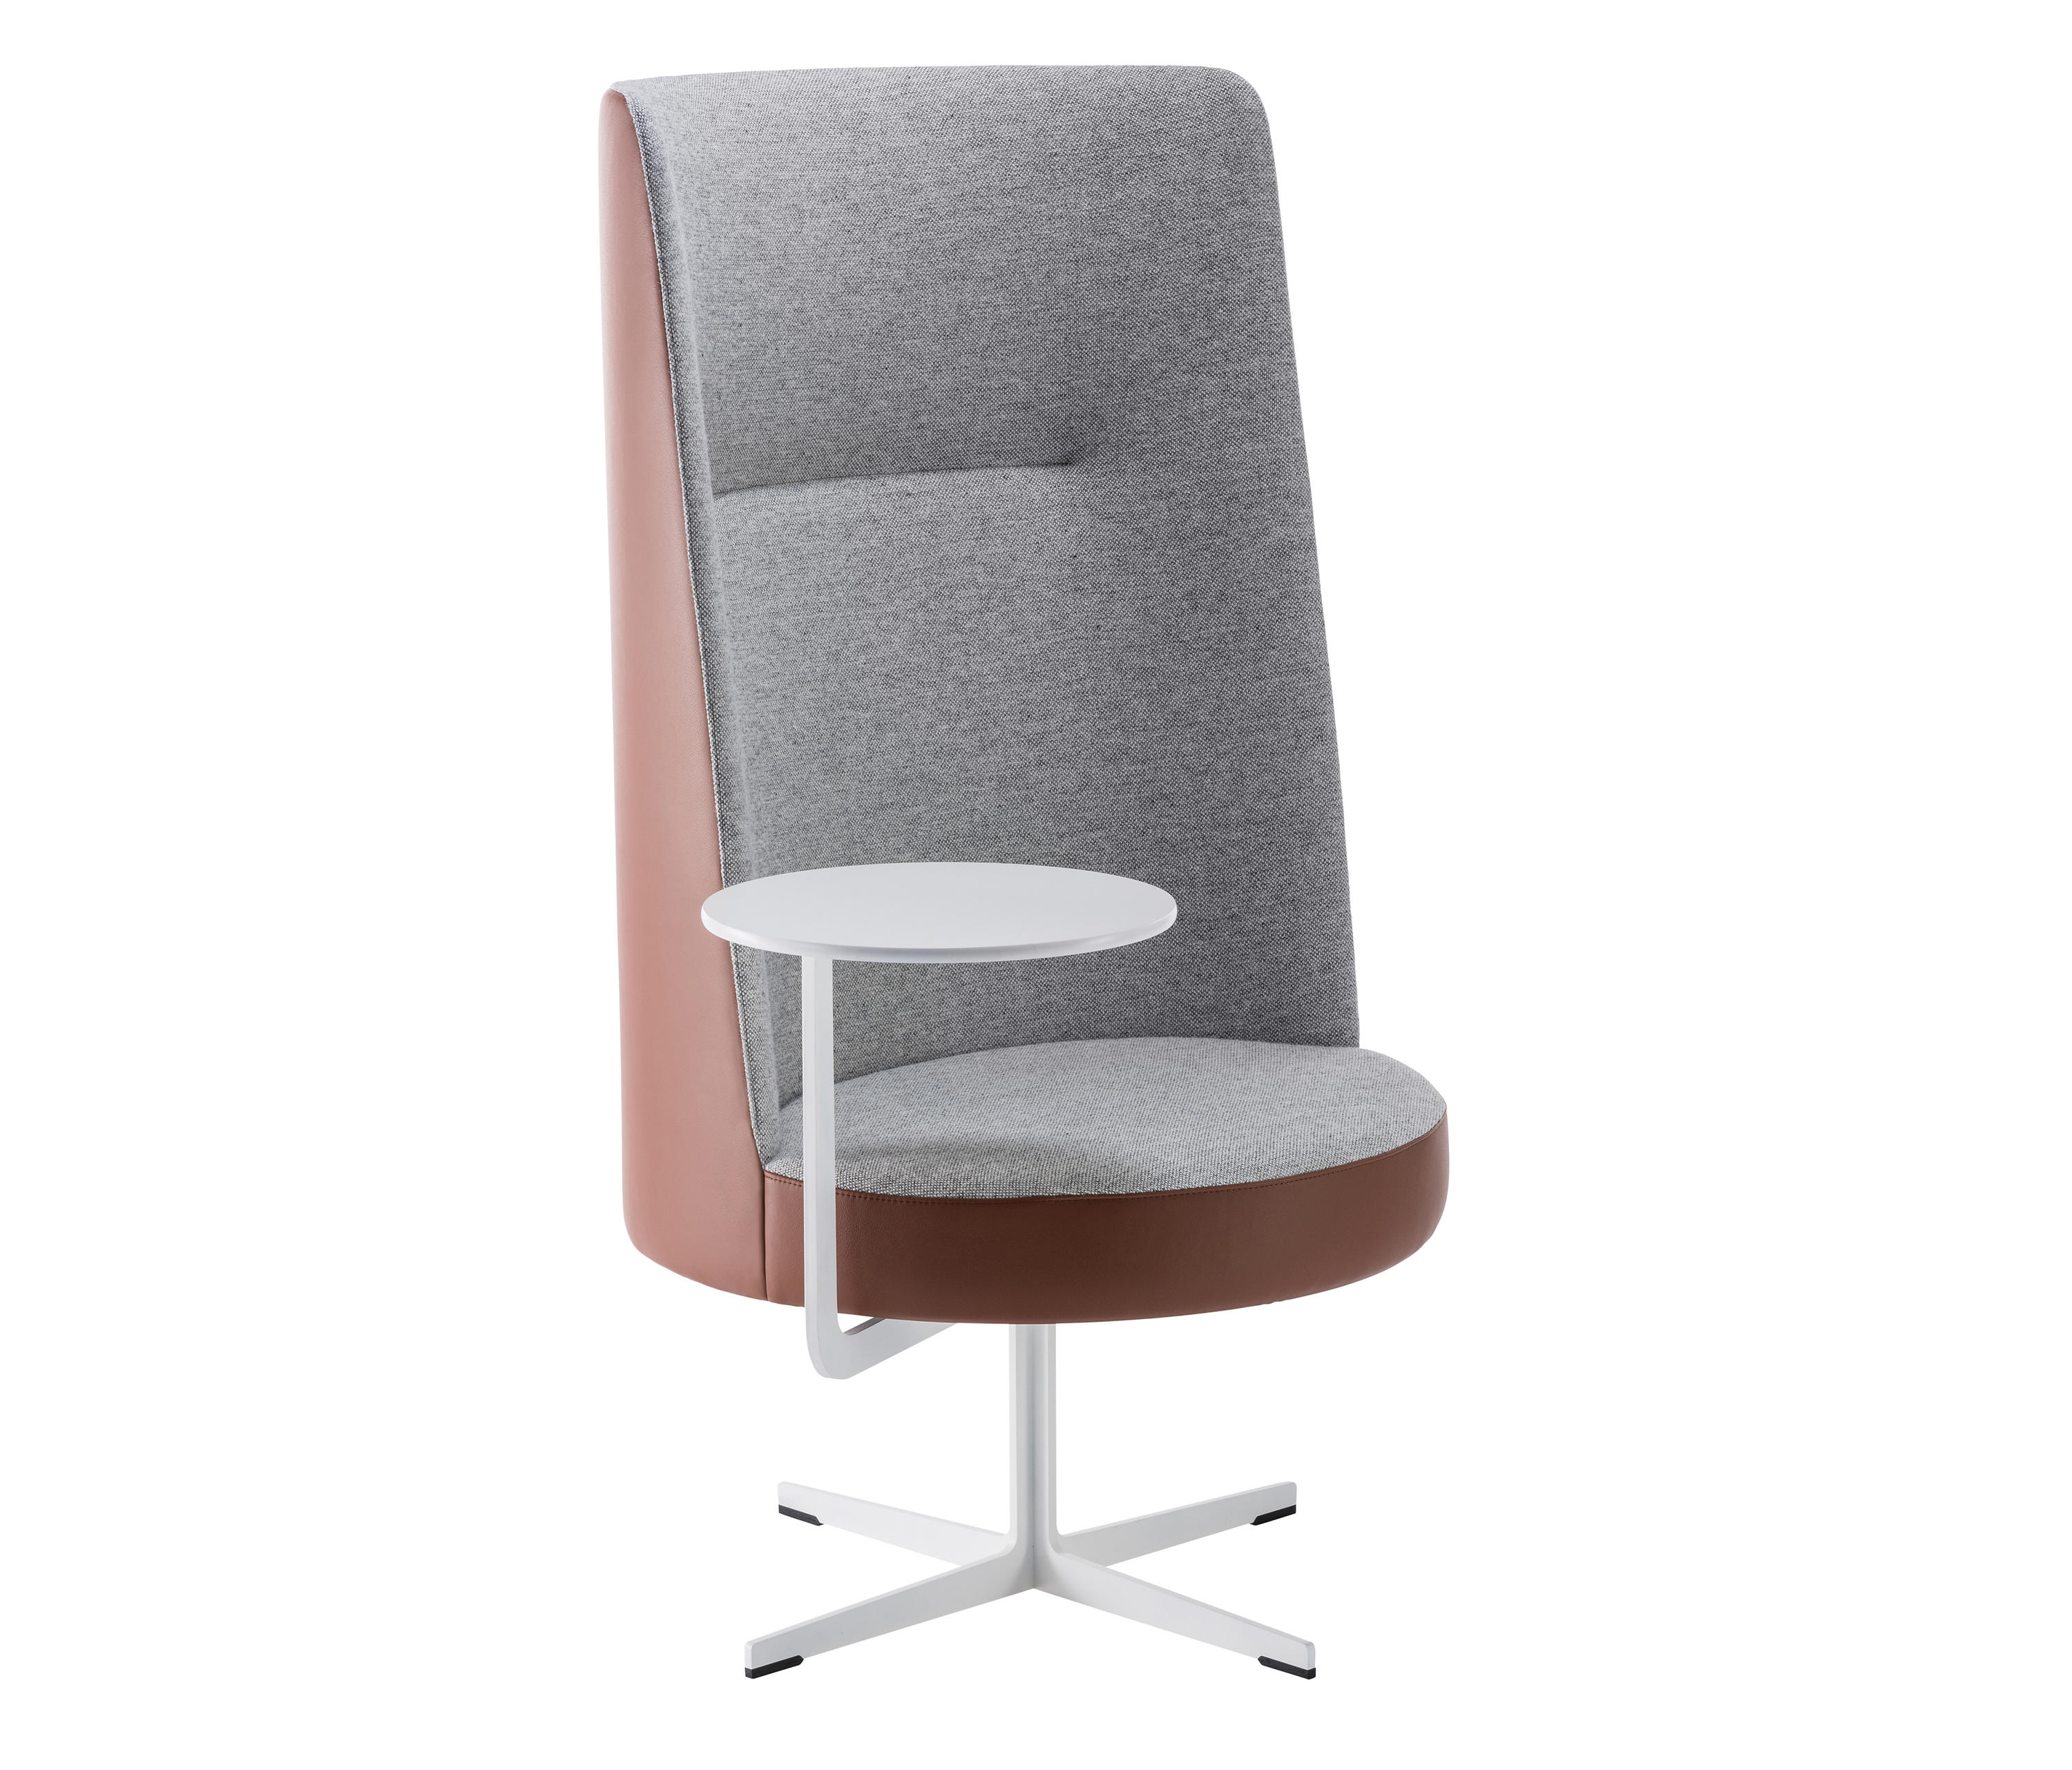 Banc high back chair bc 040 lounge chairs from brunner for Sessel schmal hoch